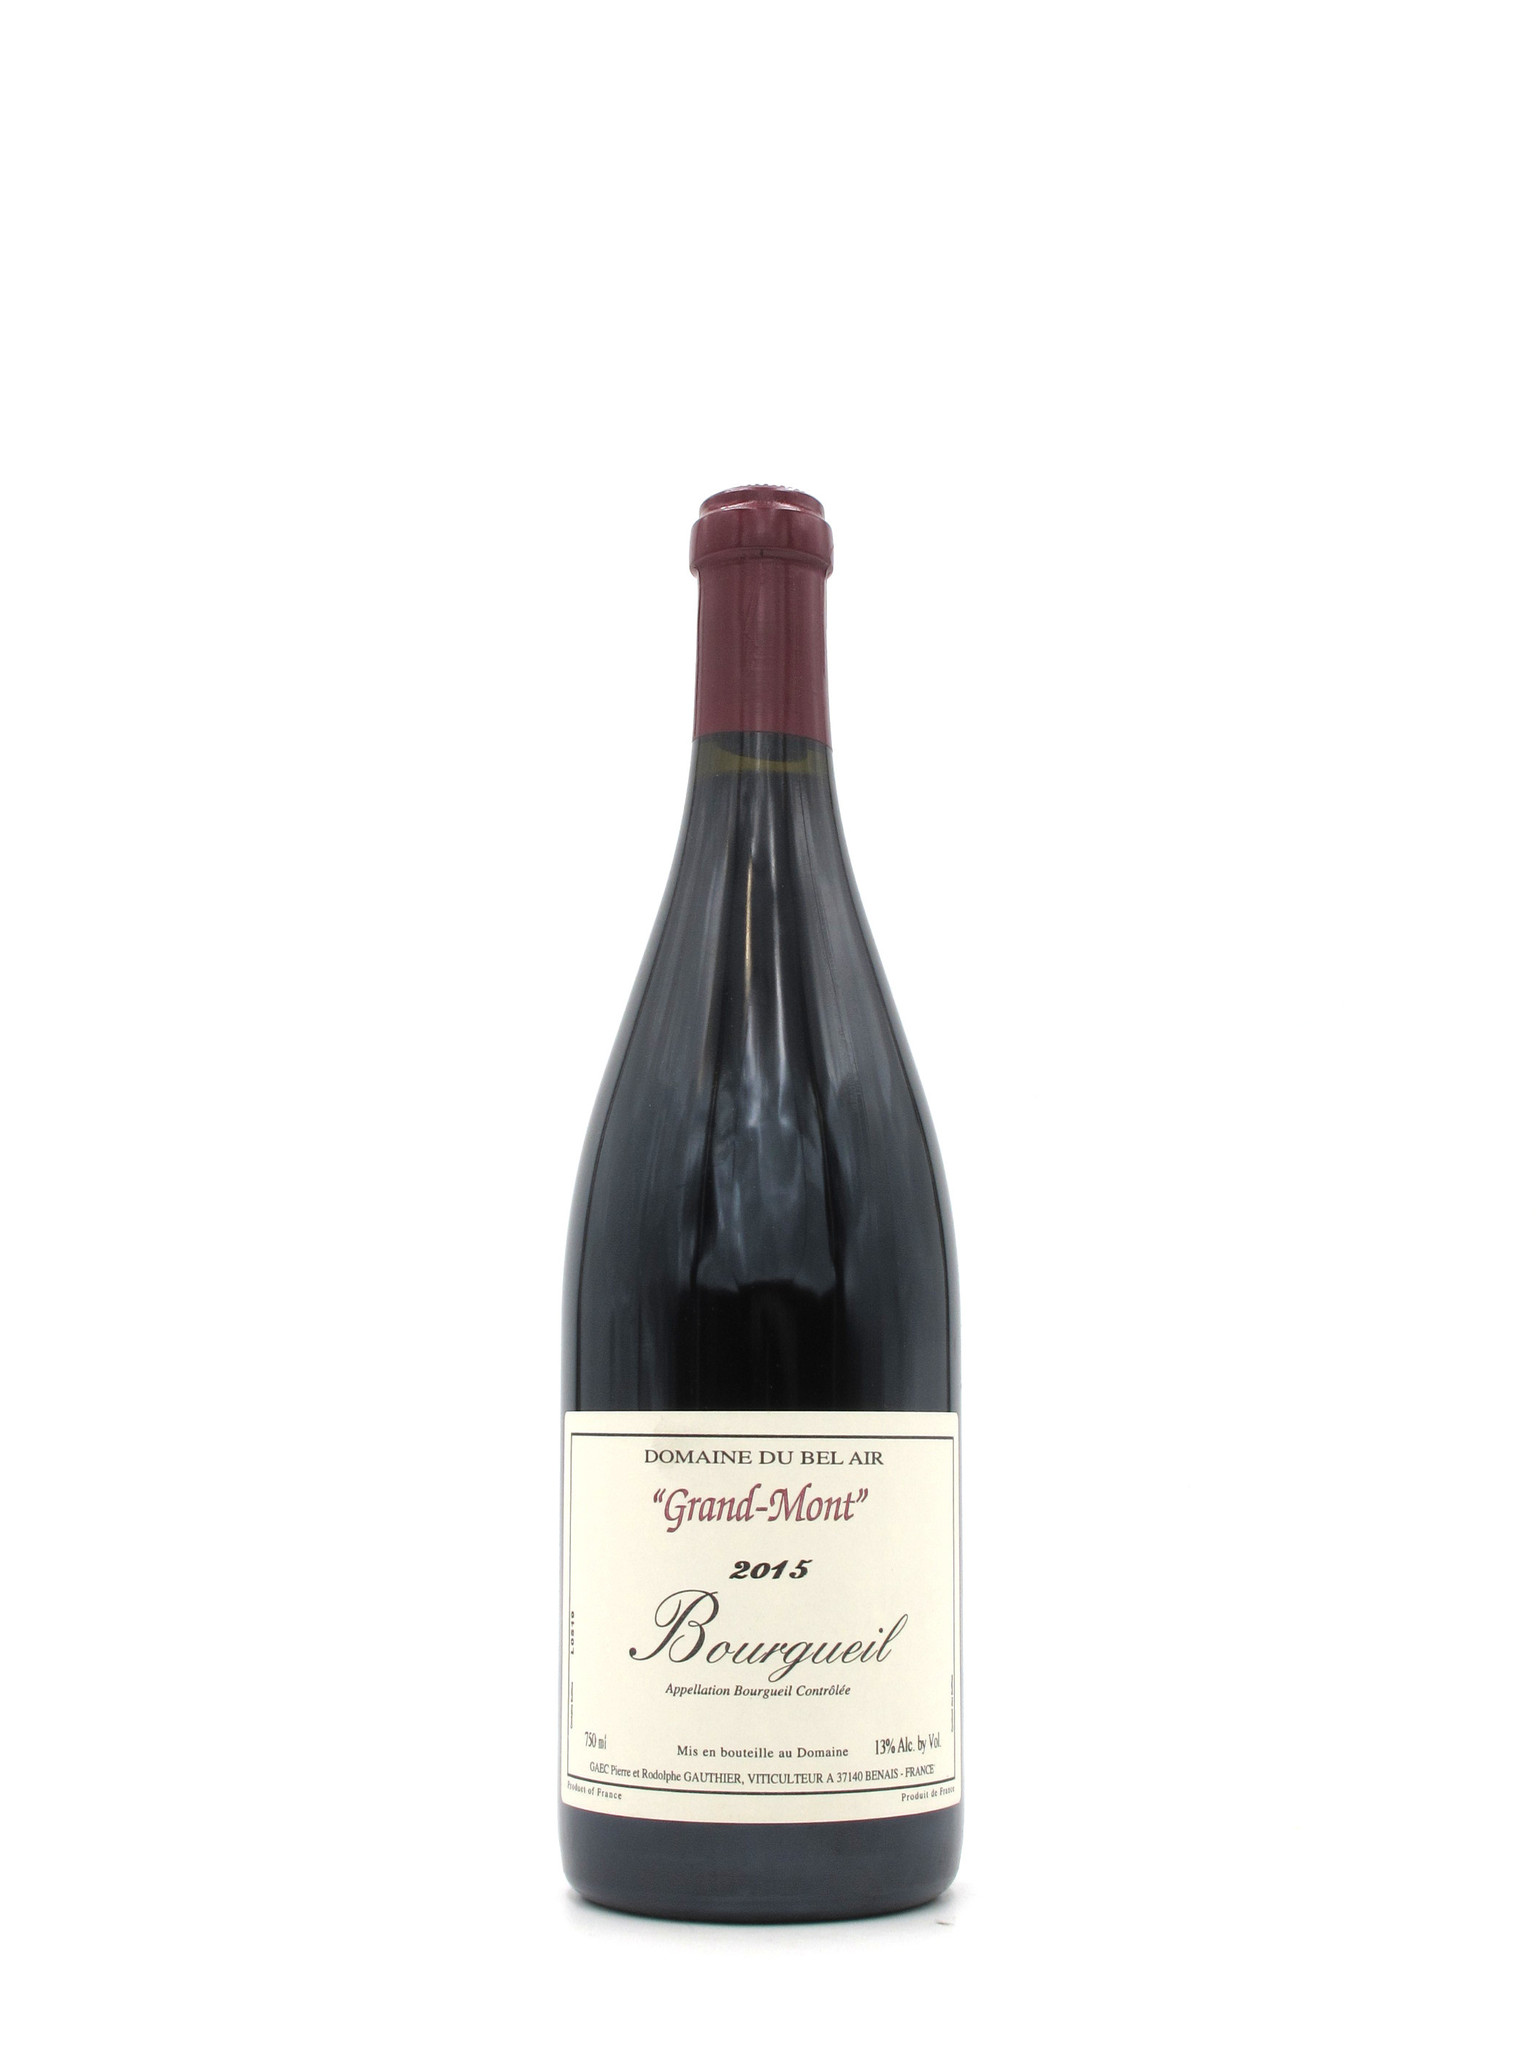 Domaine du Bel Air 2015 Domaine du Bel Air 'Grand Mont' Bourgueil 750ml